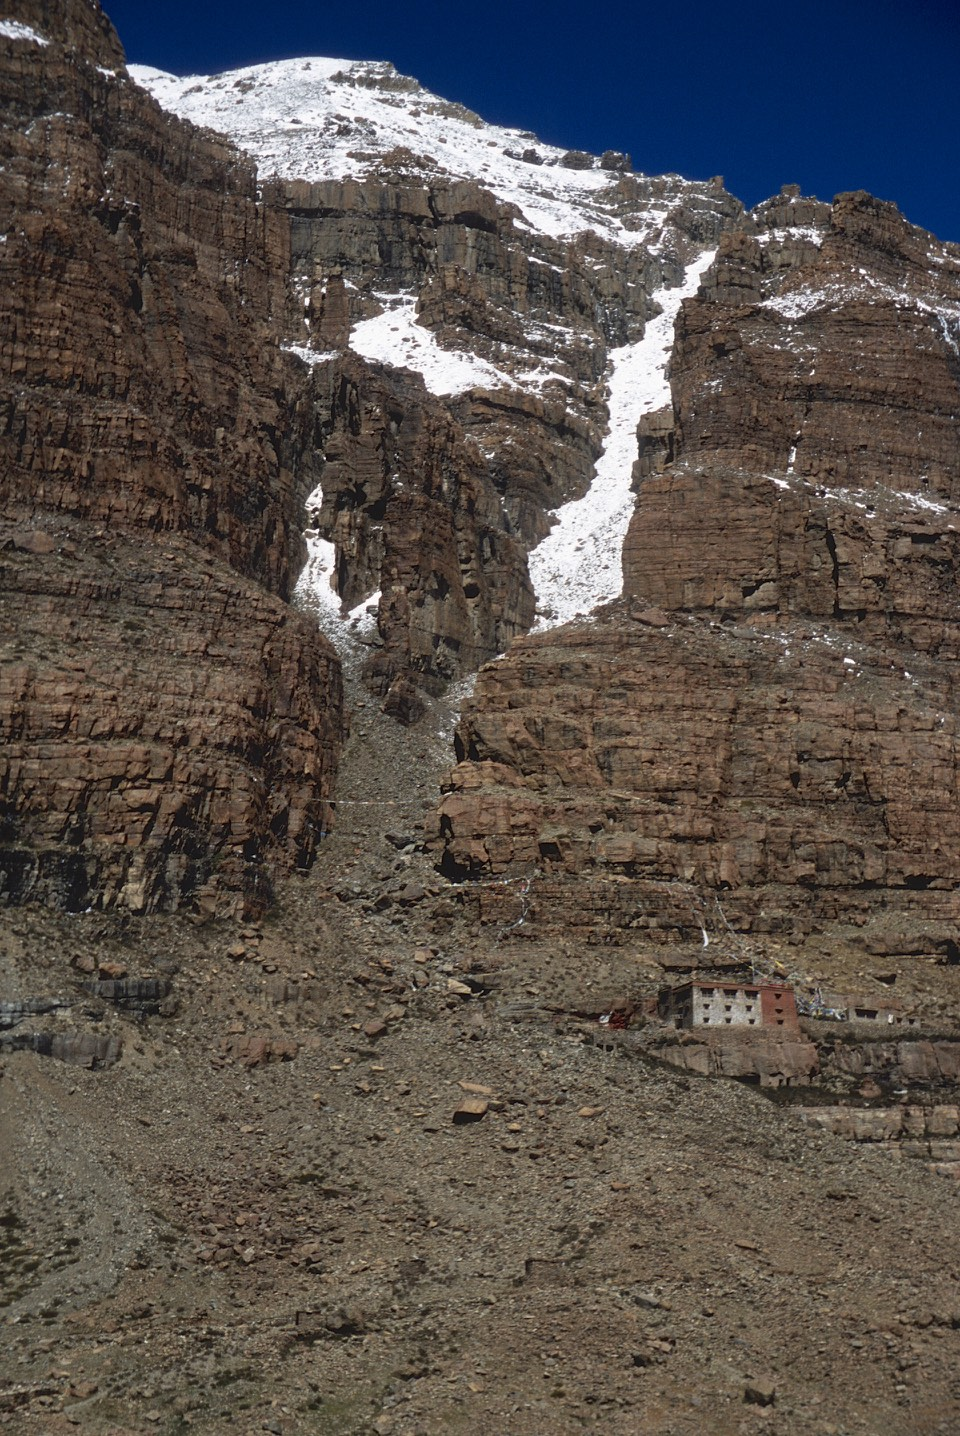 One of a few monasteries dotting Mt. Kailash.